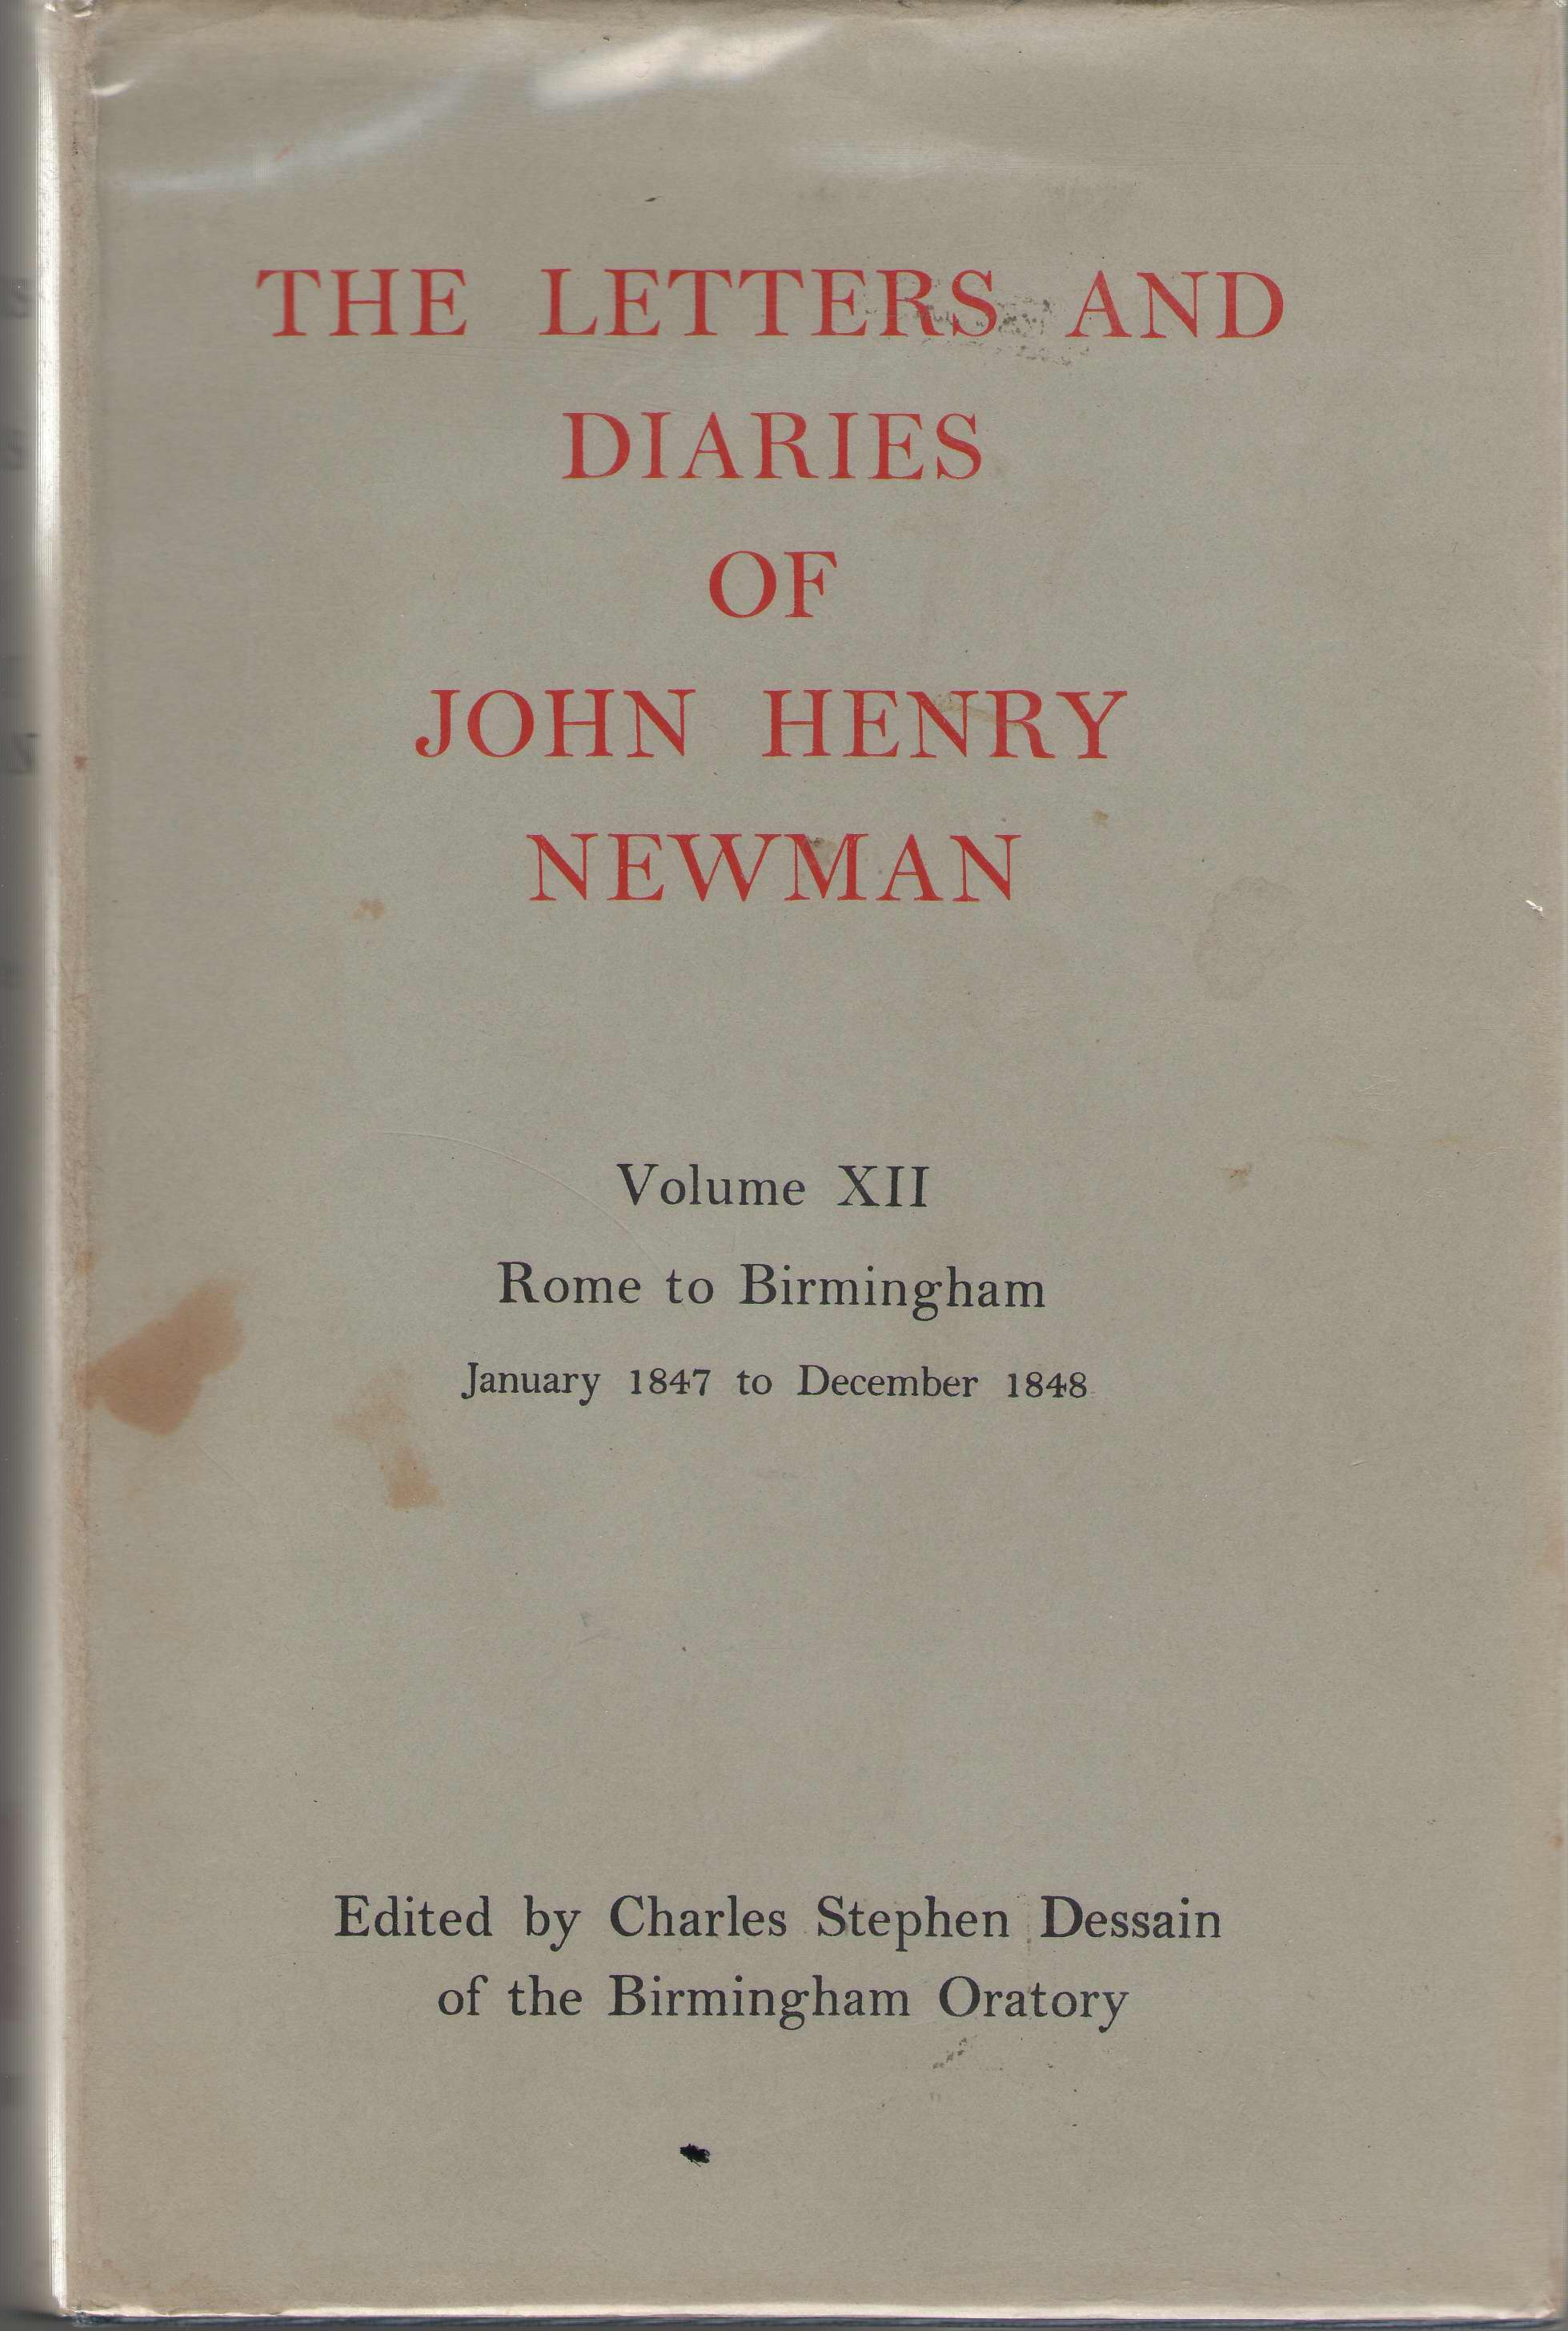 The Letters and Diaries of John Henry Newman; Vol. XII  Rome to Birmingham, Jan., 1847 to Dec., 1848, Newman, John Henry; Dessain, Charles Stephen (editor)